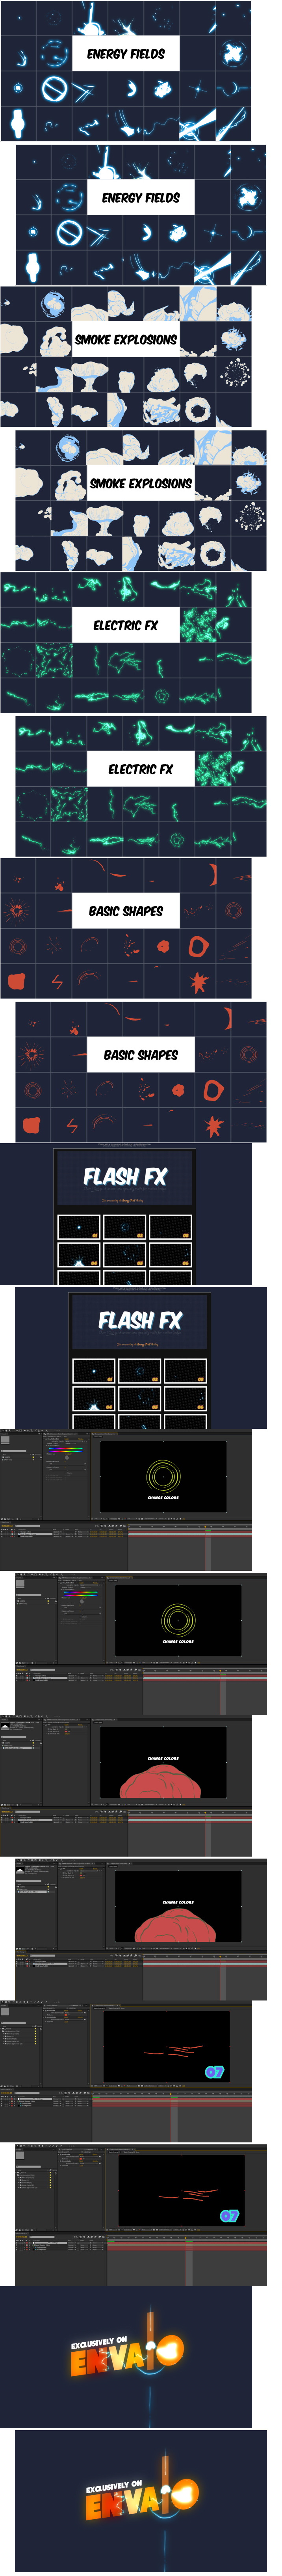 Videohive Flash Fx – Animation Pack by Darkpulse 6527641